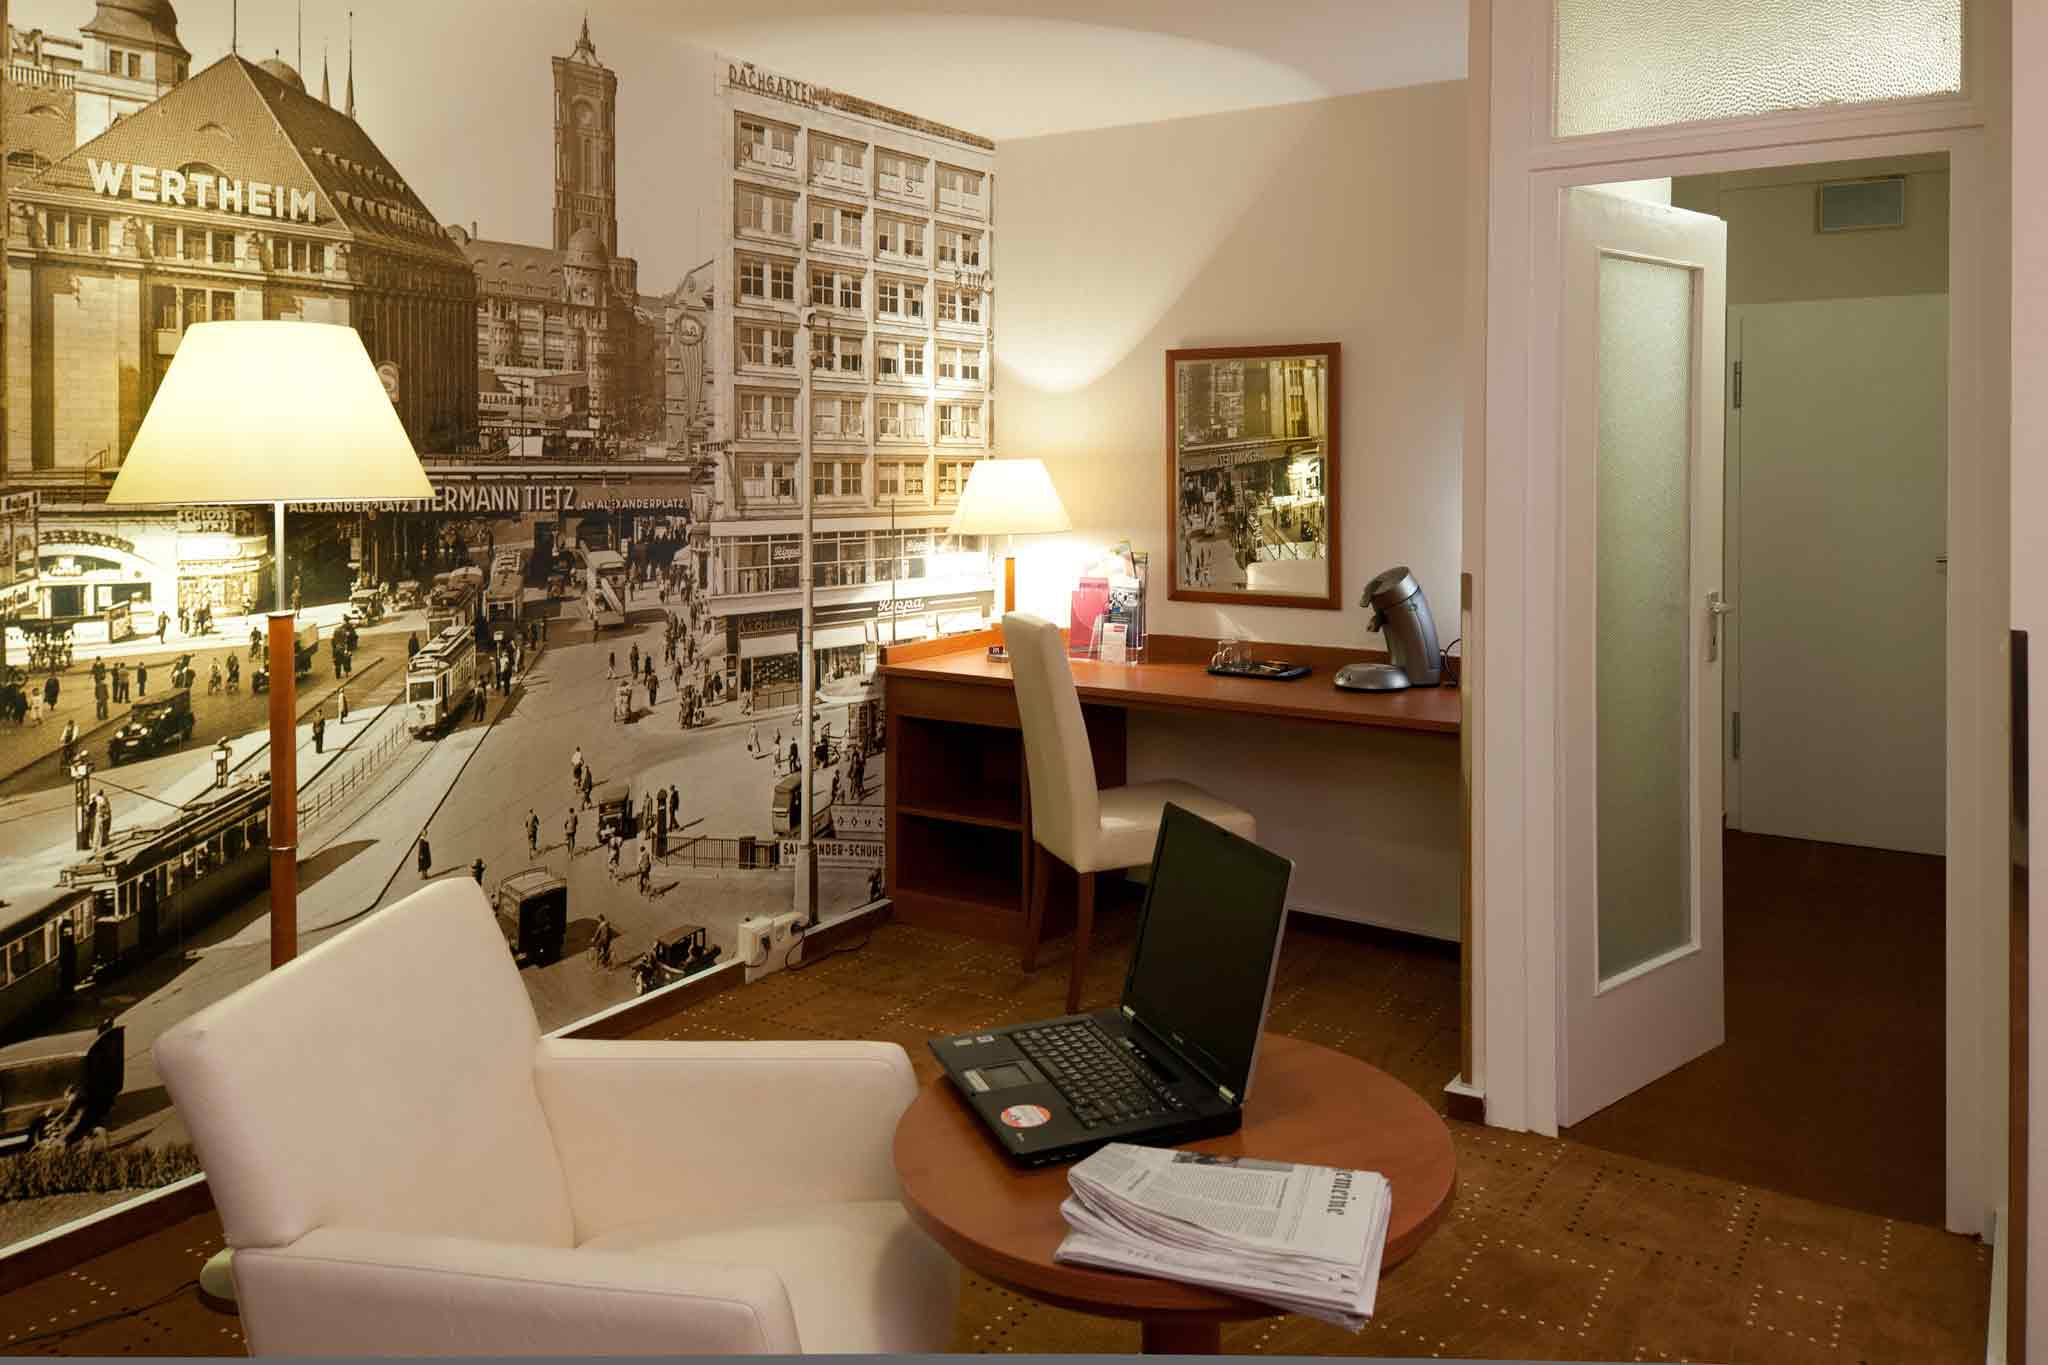 Mercure Hotel Berlin am Alexanderplatz Guestroom 2